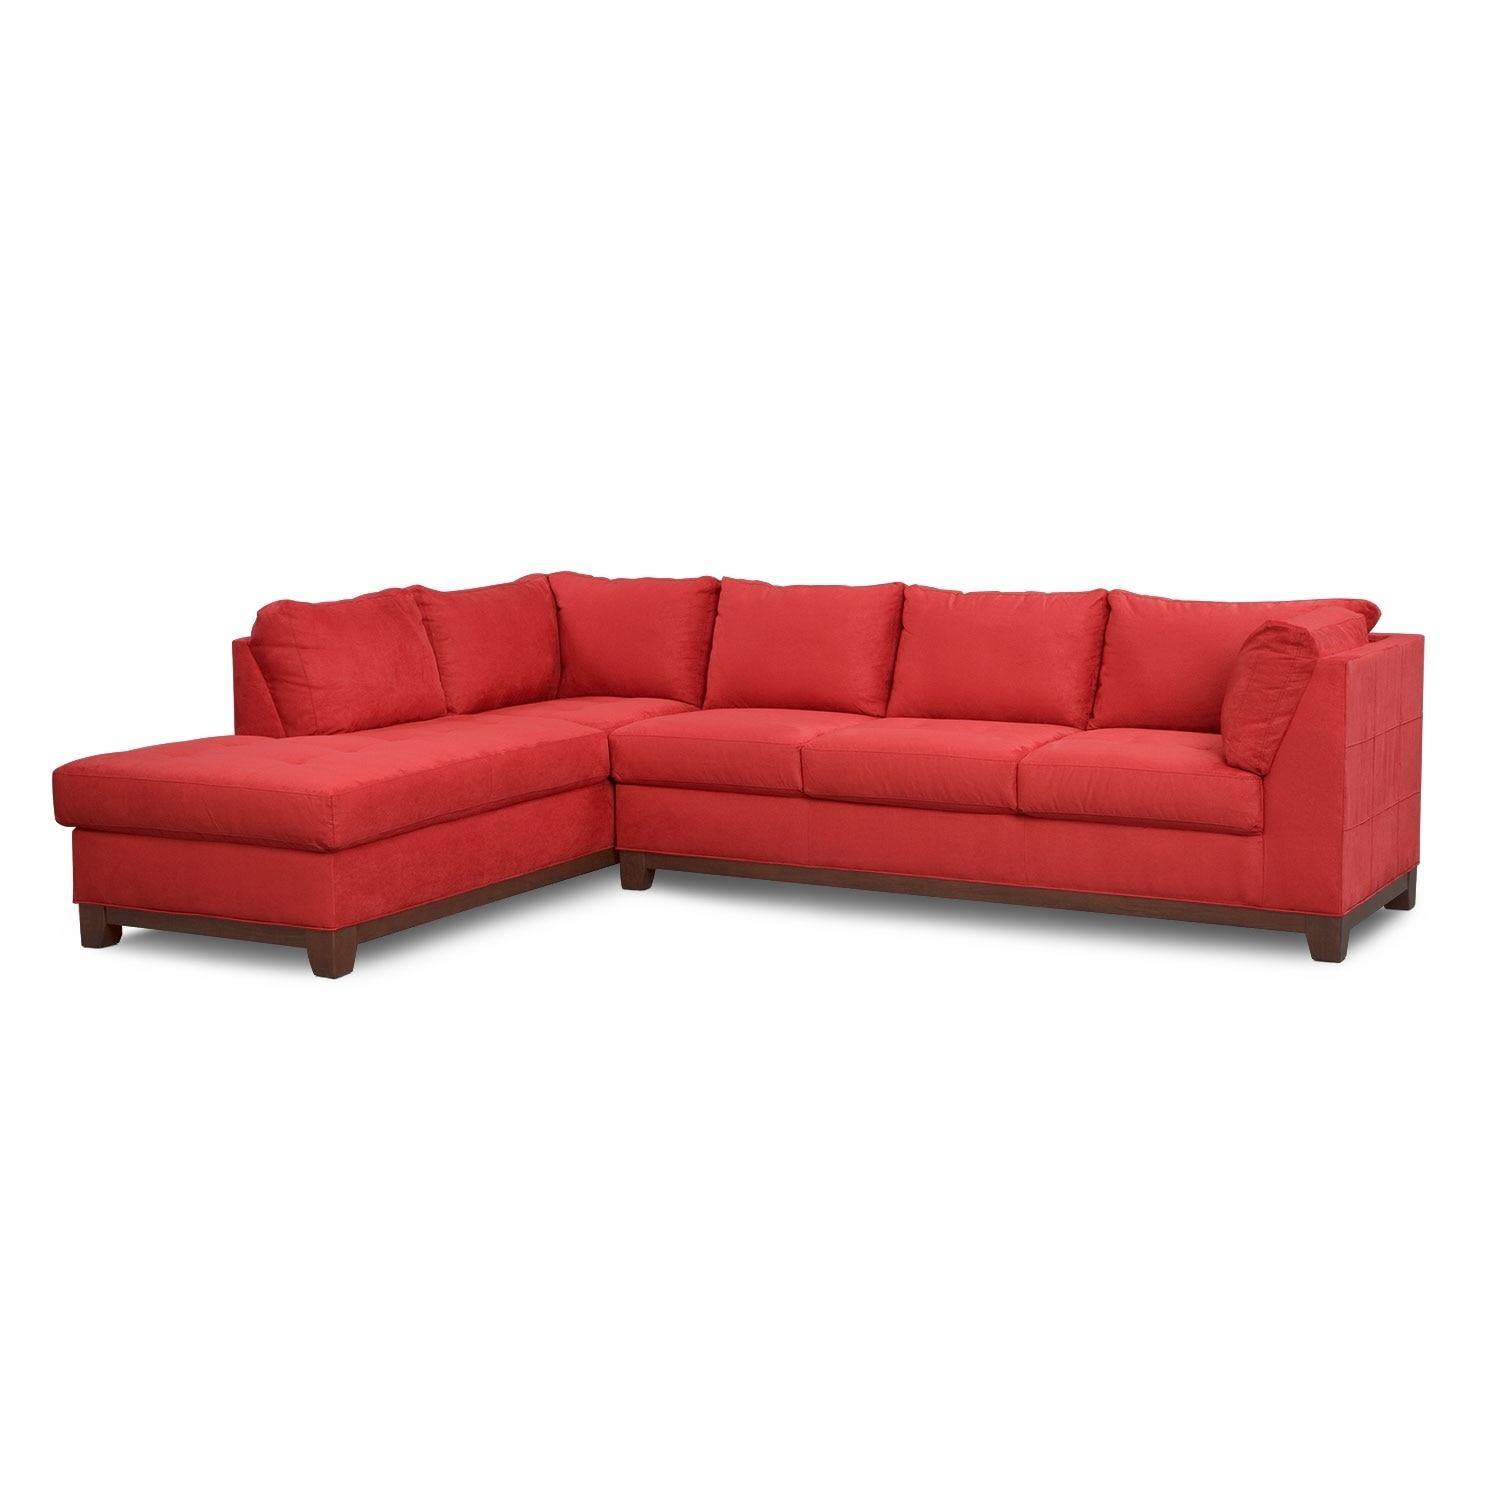 Soho 2 Piece Sectional With Left Facing Chaise – Red | Value City Within Sectional With 2 Chaises (Image 16 of 20)